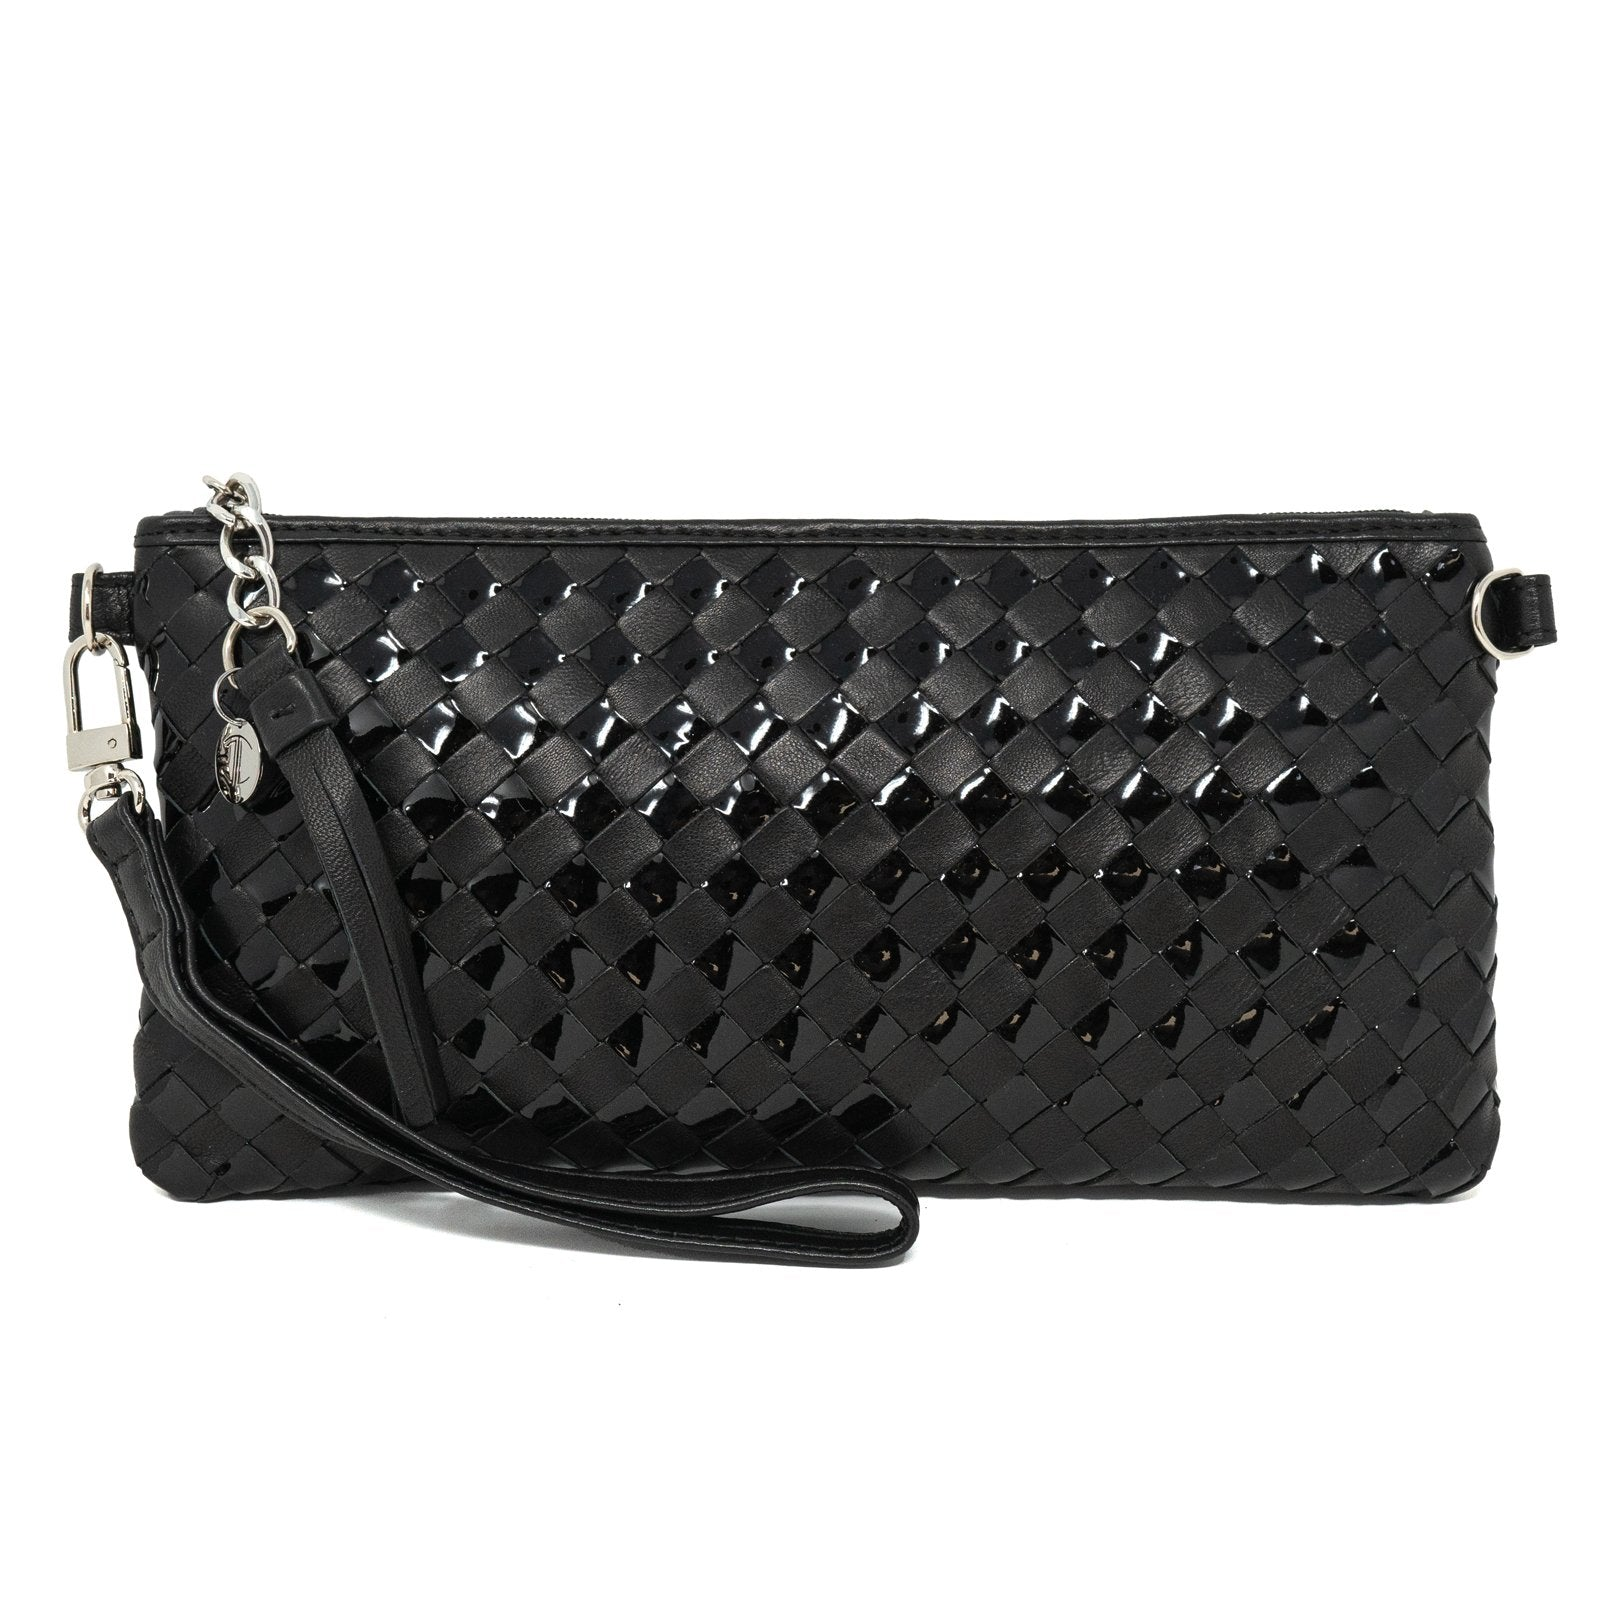 Women Intrecciato Black Patent Leather Small Soft Clutch Intreccio Quadro - Jennifer Tattanelli